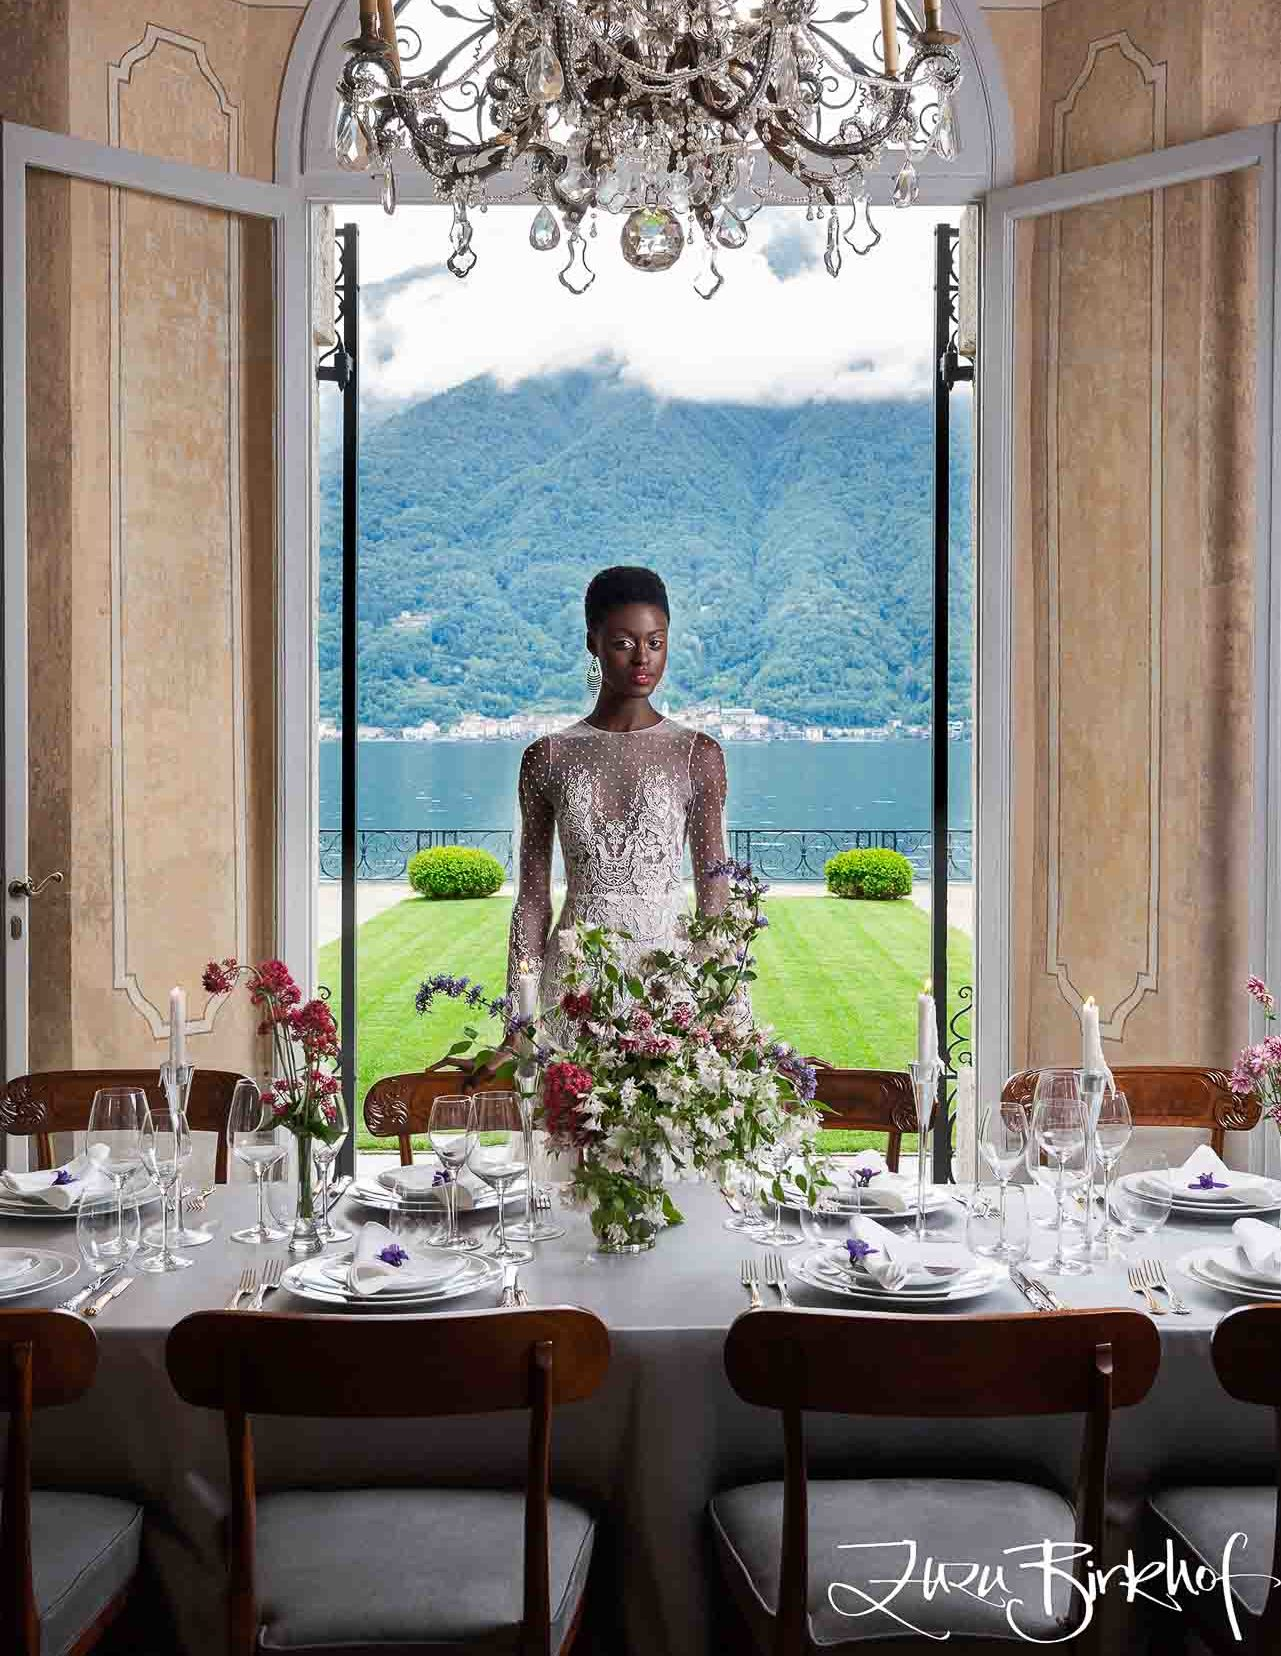 Villa Balbiano luxury property Lake Como Milan Italy Heritage Collection exclusive private rent rental best service table lake view stunning table setting model portrait wedding table decor 1 e1573587130831